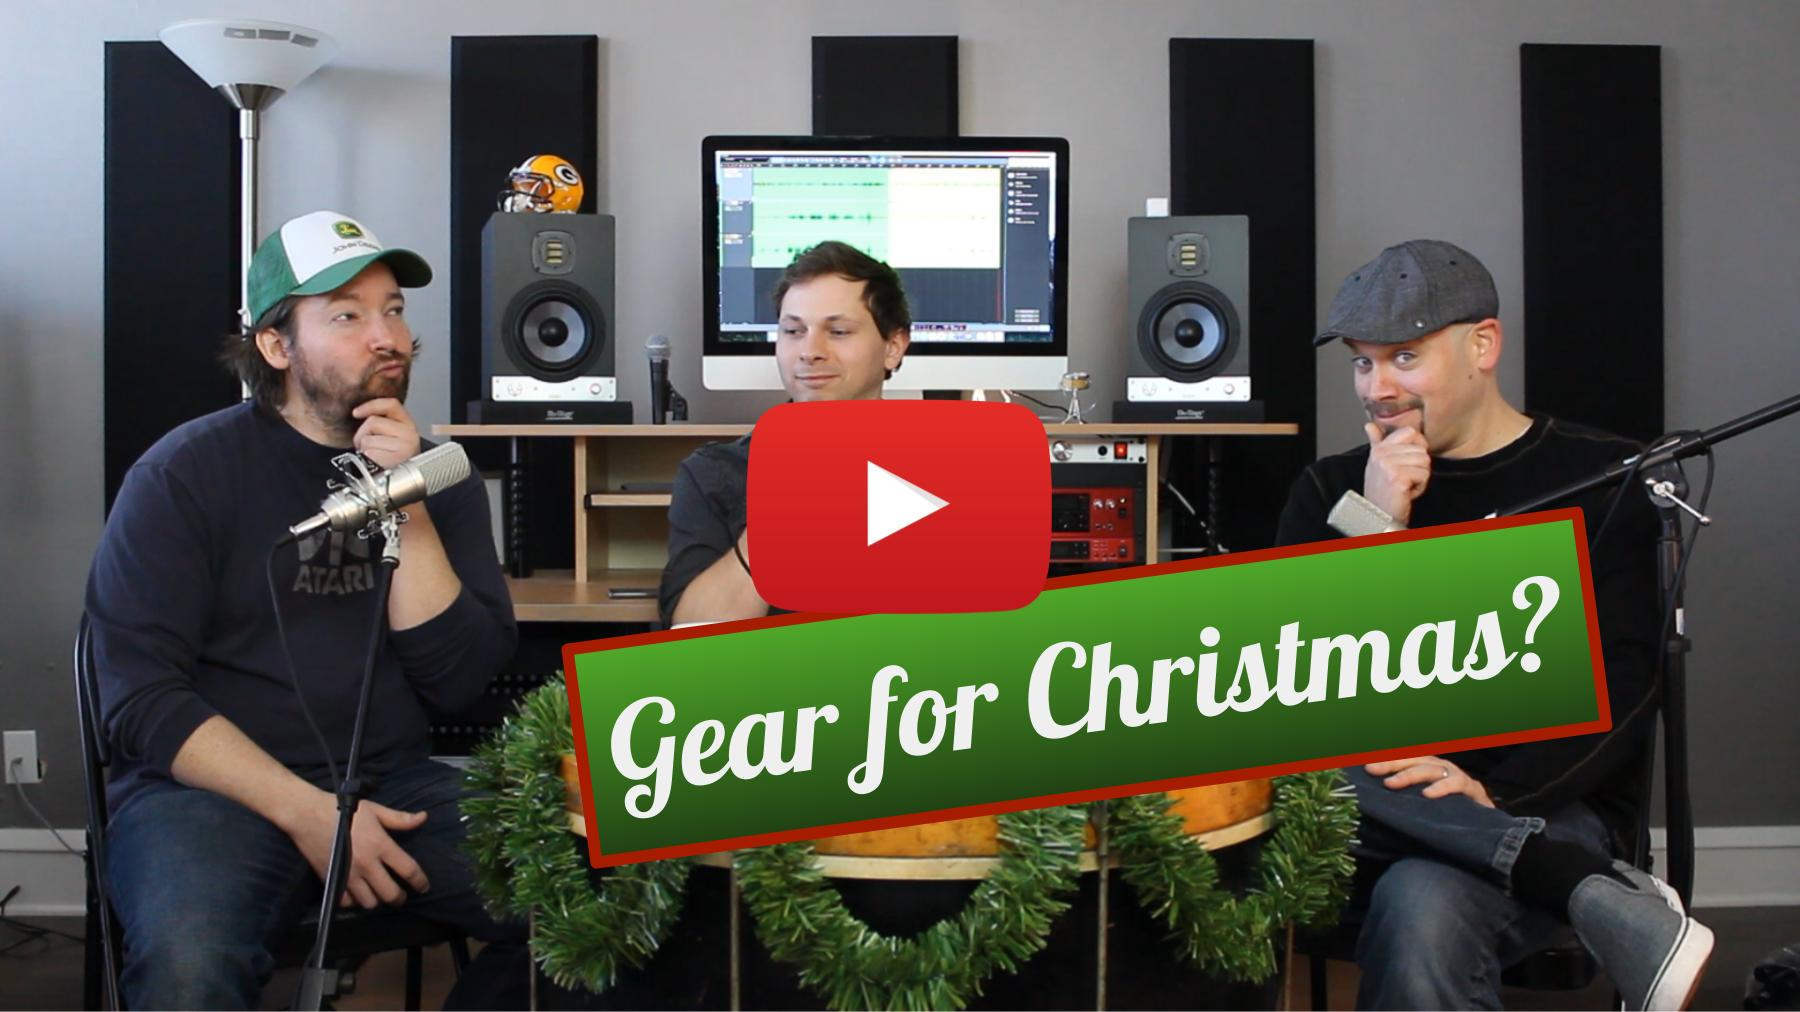 Weekly Show - Pixel Pro Audio: Unfiltered - What Gear Are We Buying for Christmas?